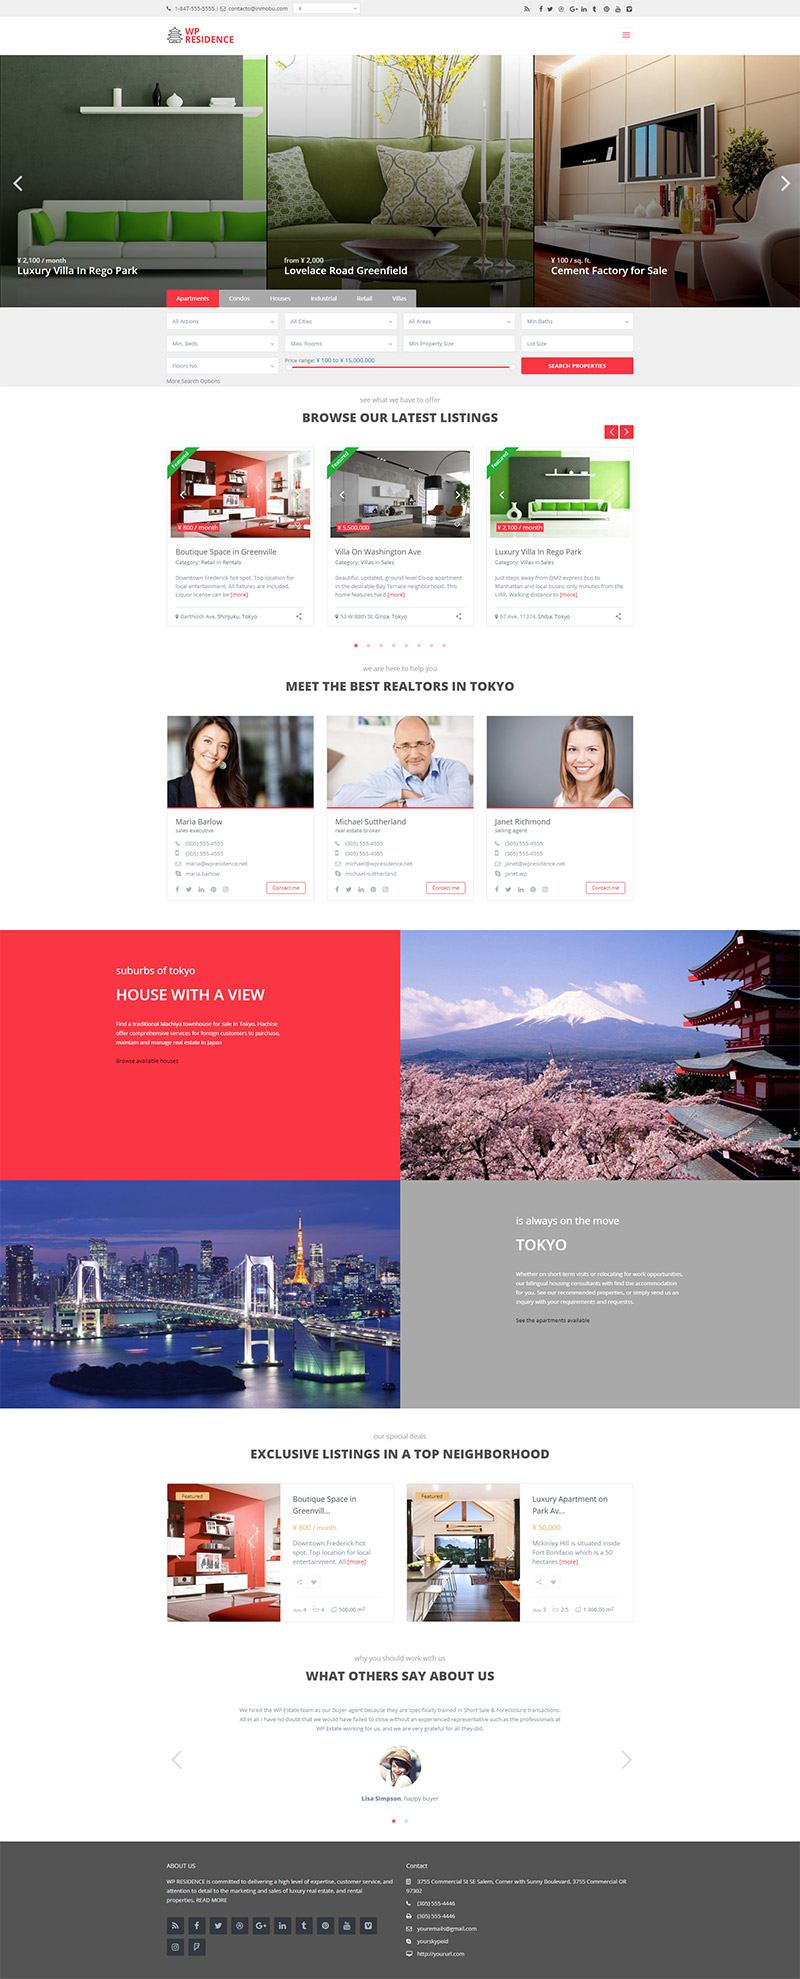 Giao-dien-website-bat-dong-san-Residence